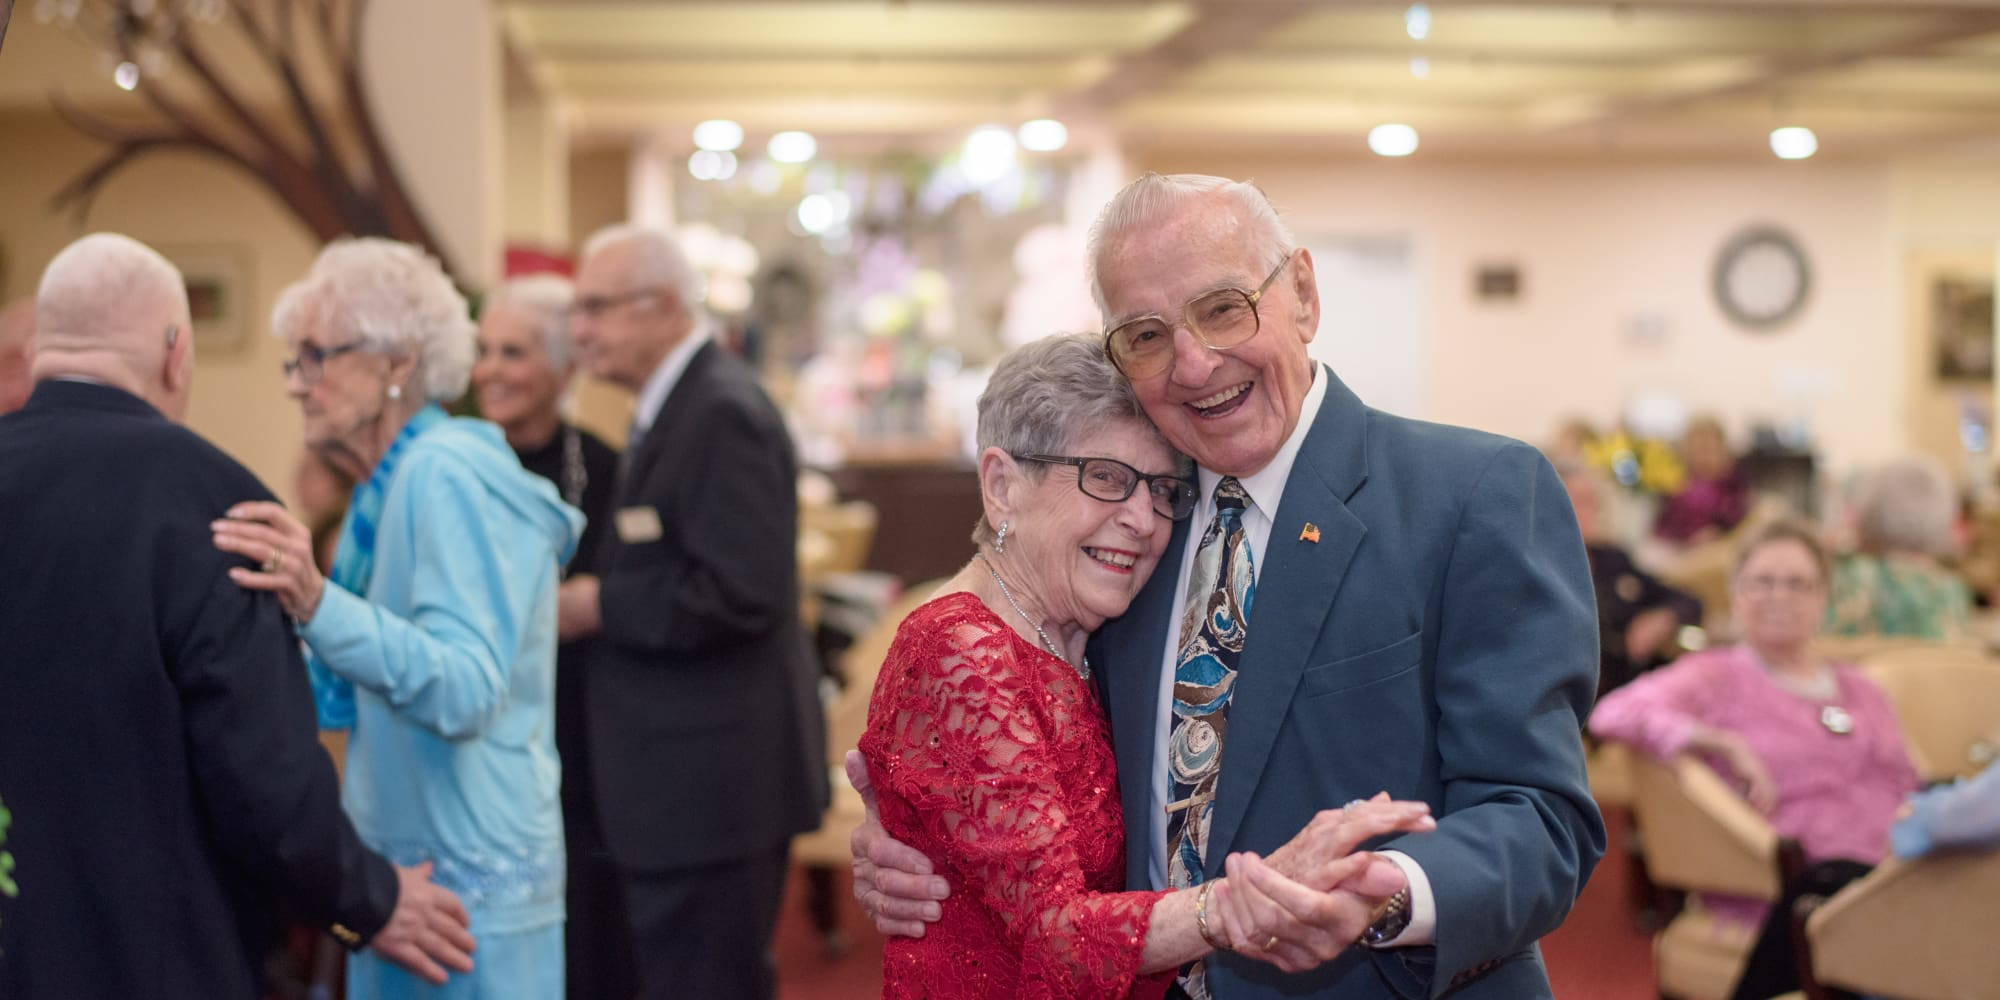 A happy couple dancing at Paloma Landing Retirement Community in Albuquerque, New Mexico